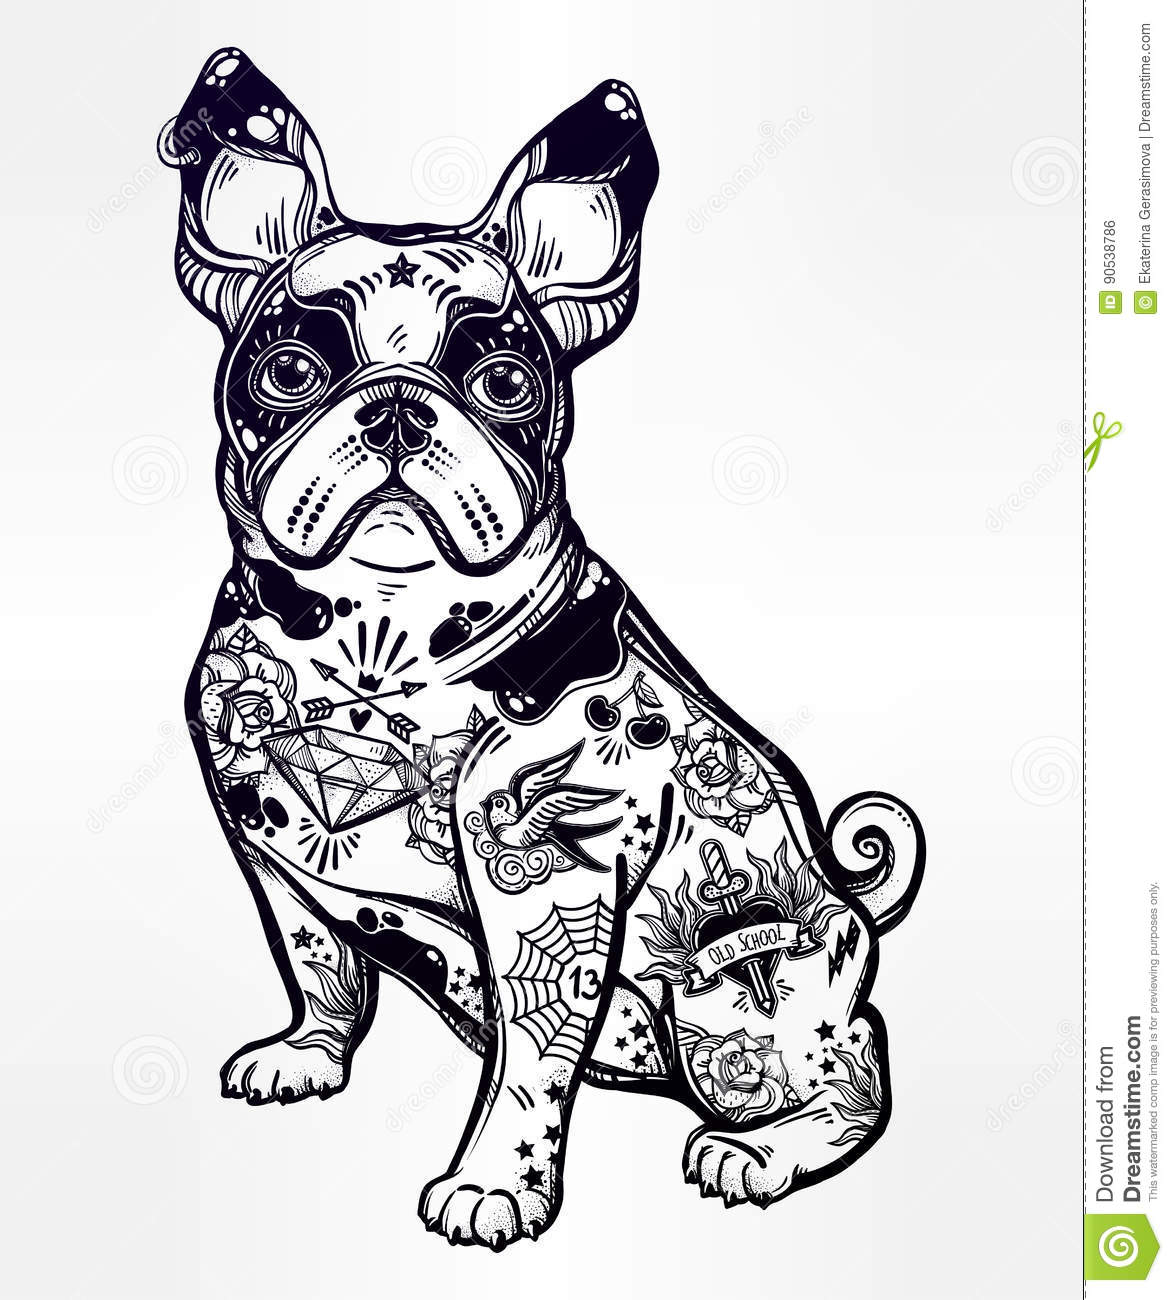 Pug cartoons illustrations vector stock images 2166 for Thoroughbred tattoo lookup